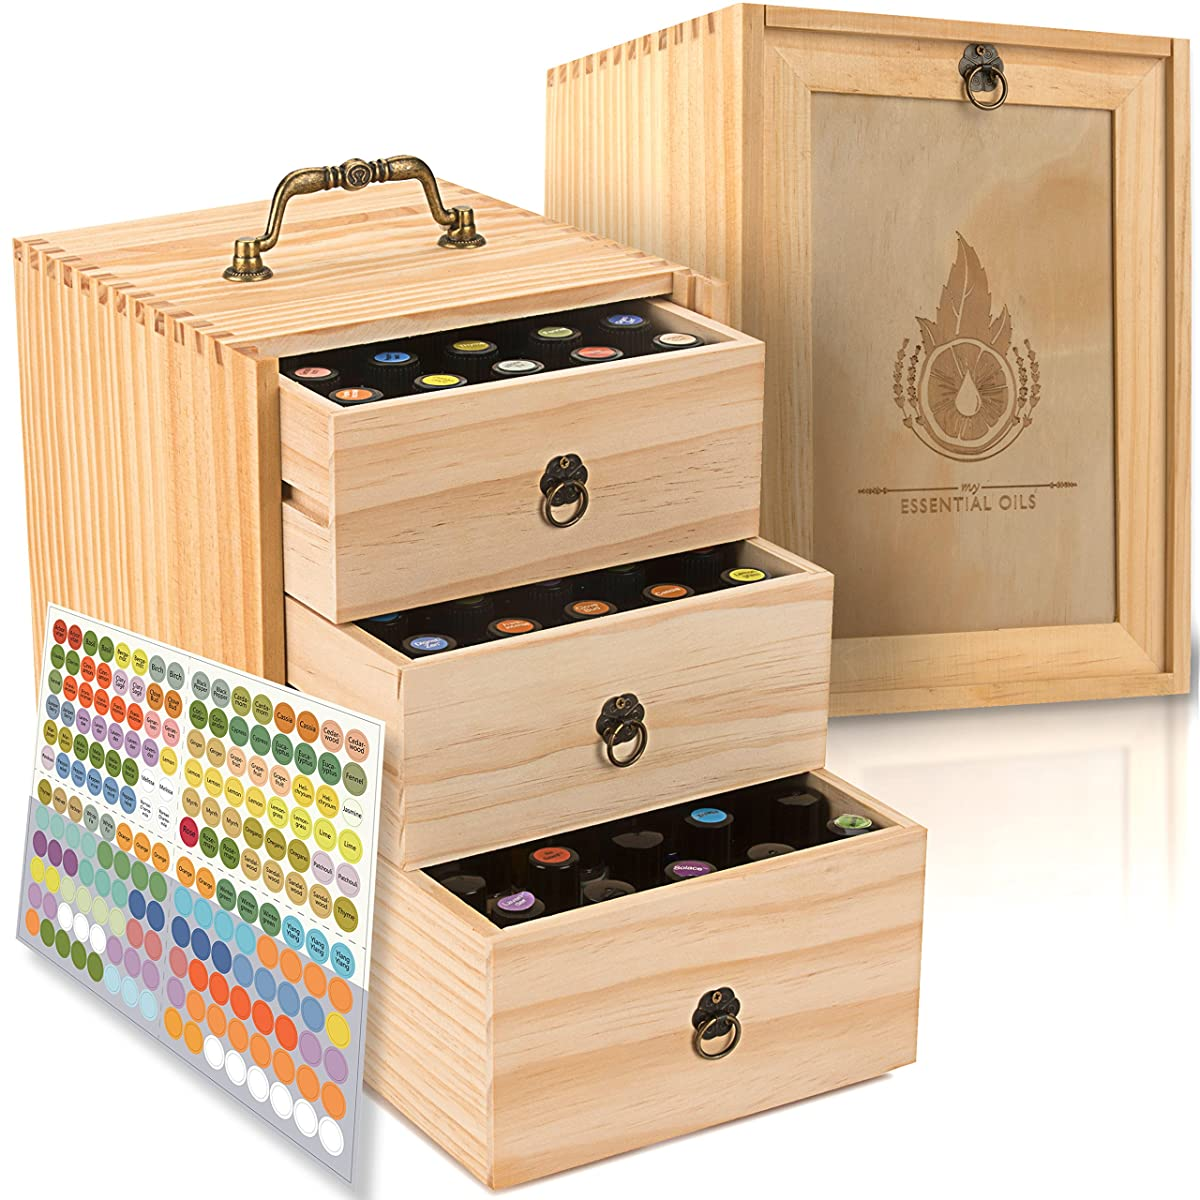 Essential Oil Box - Wooden Storage Case With Handle. Holds 75 Bottles & Roller Balls. 3 Tier Space Saver. Large Organizer Best For Keeping Your Oils Safe. Free EO Labels